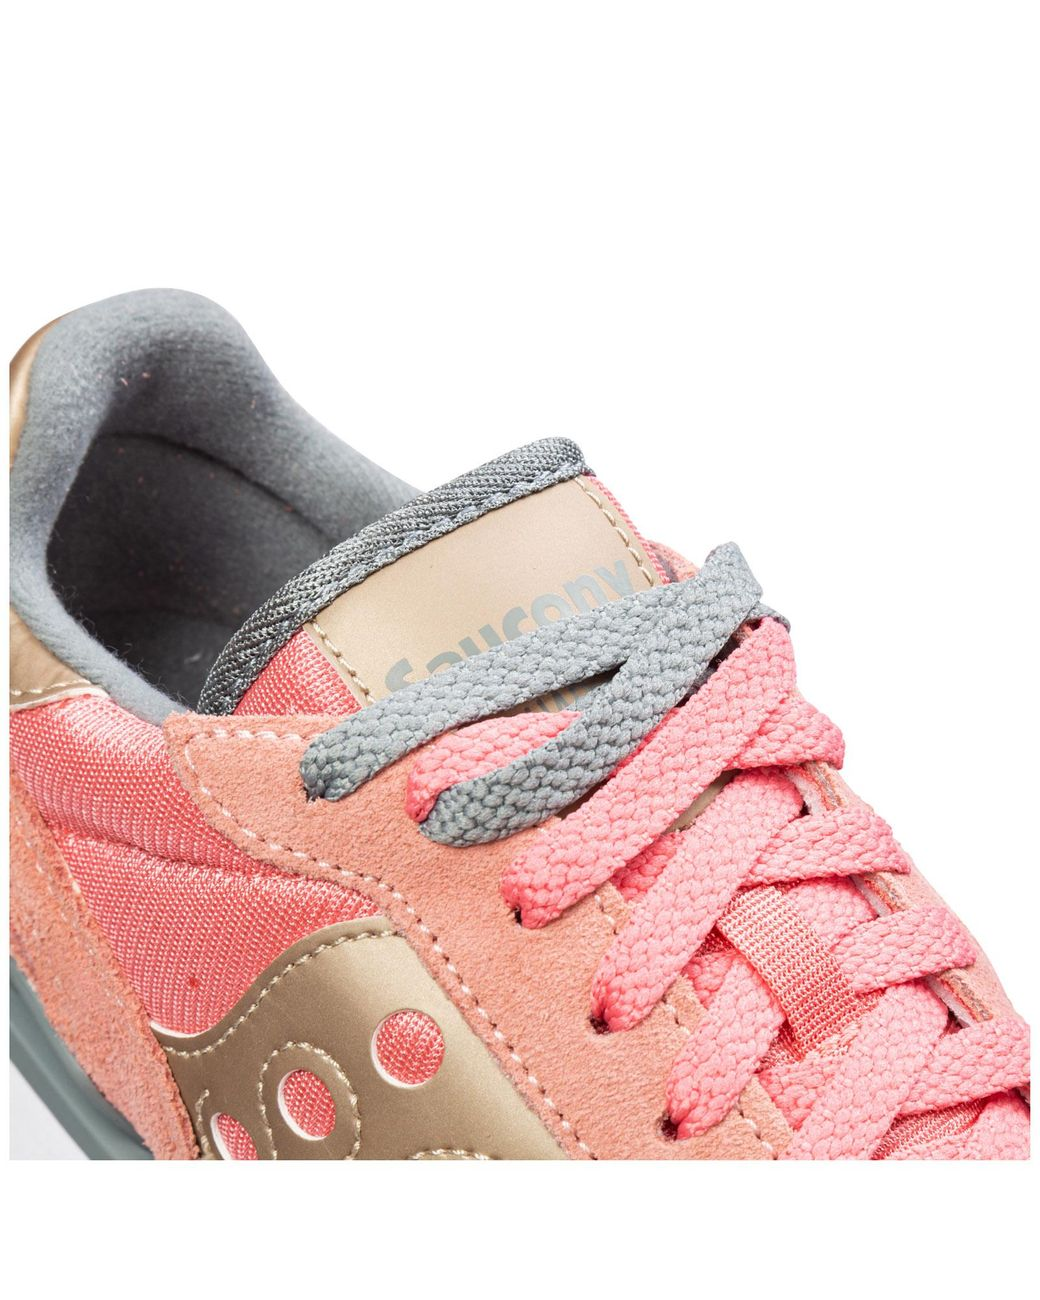 dw womens trainers official c1cb6 04f70